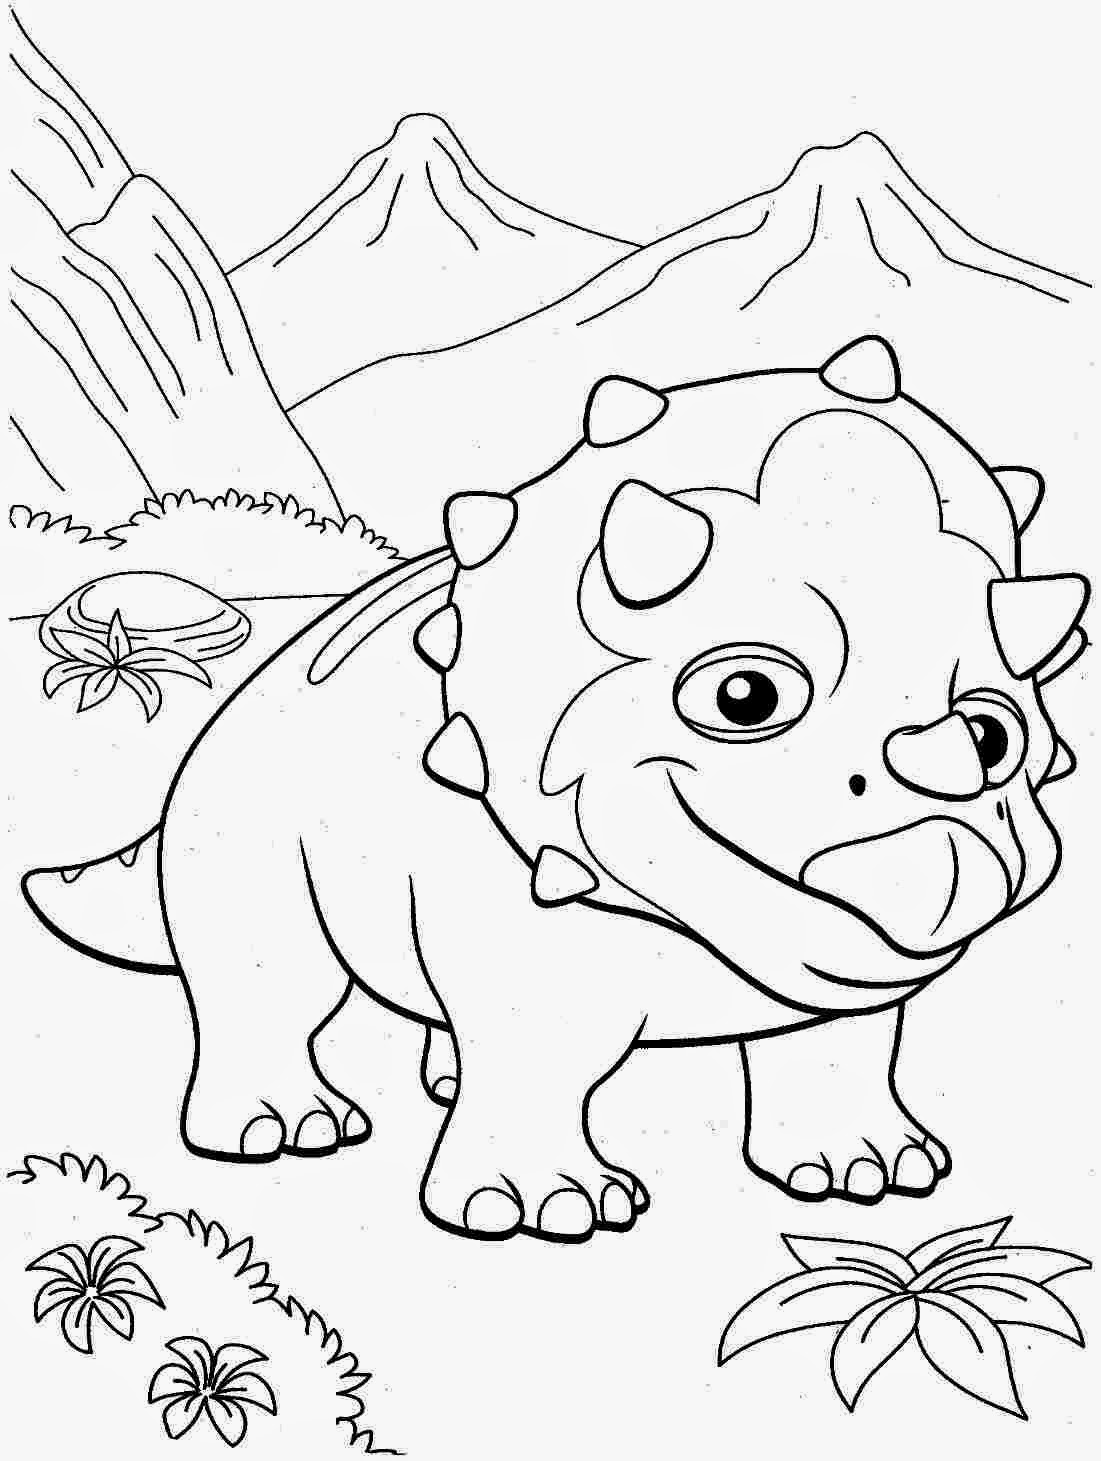 dino coloring pages baby dinosaur coloring pages for preschoolers activity coloring pages dino 1 1